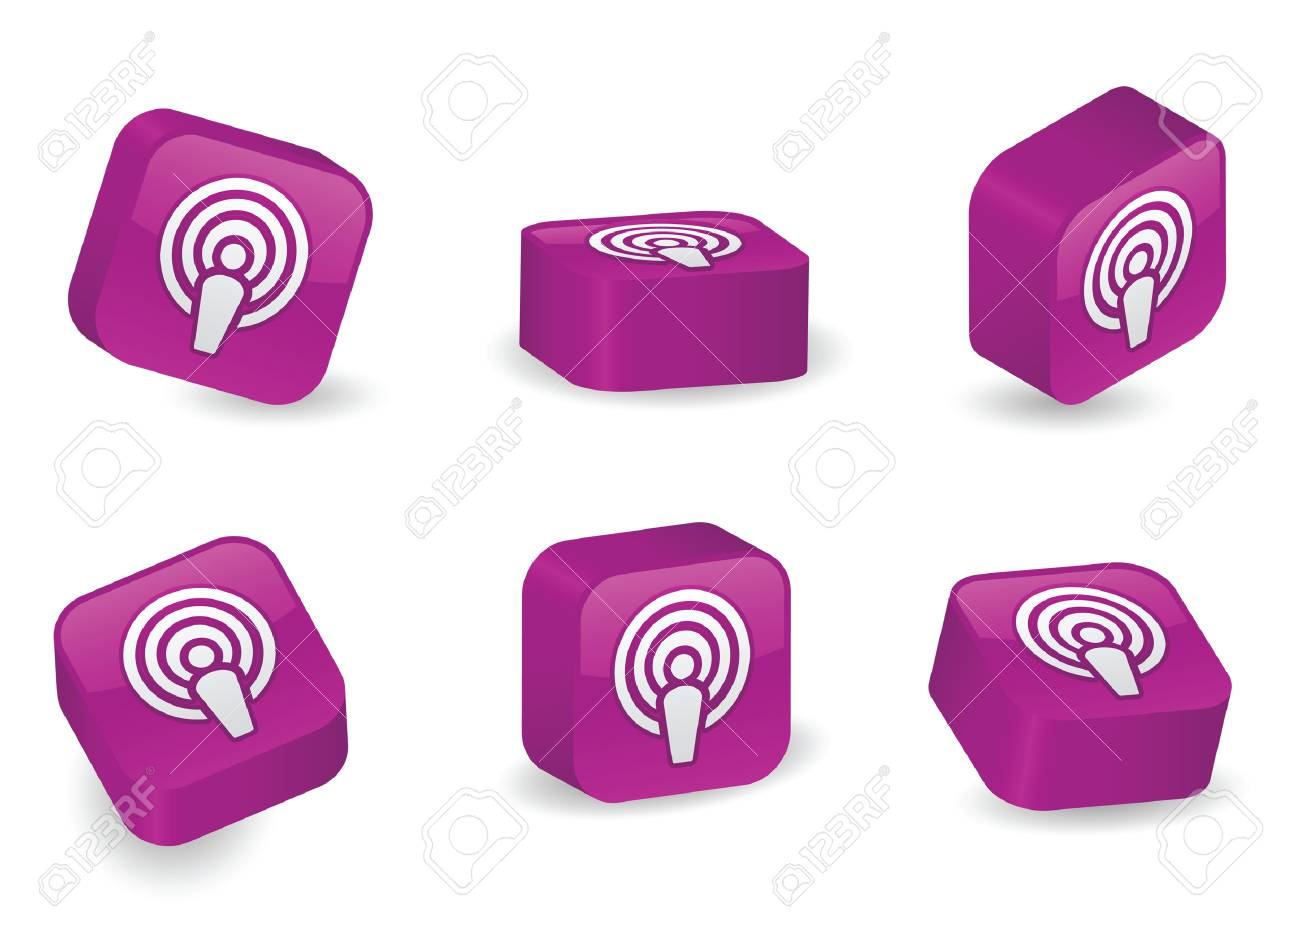 Podcast icon on vibrant, glossy, three-dimensional blocks in various positions Stock Vector - 5270146